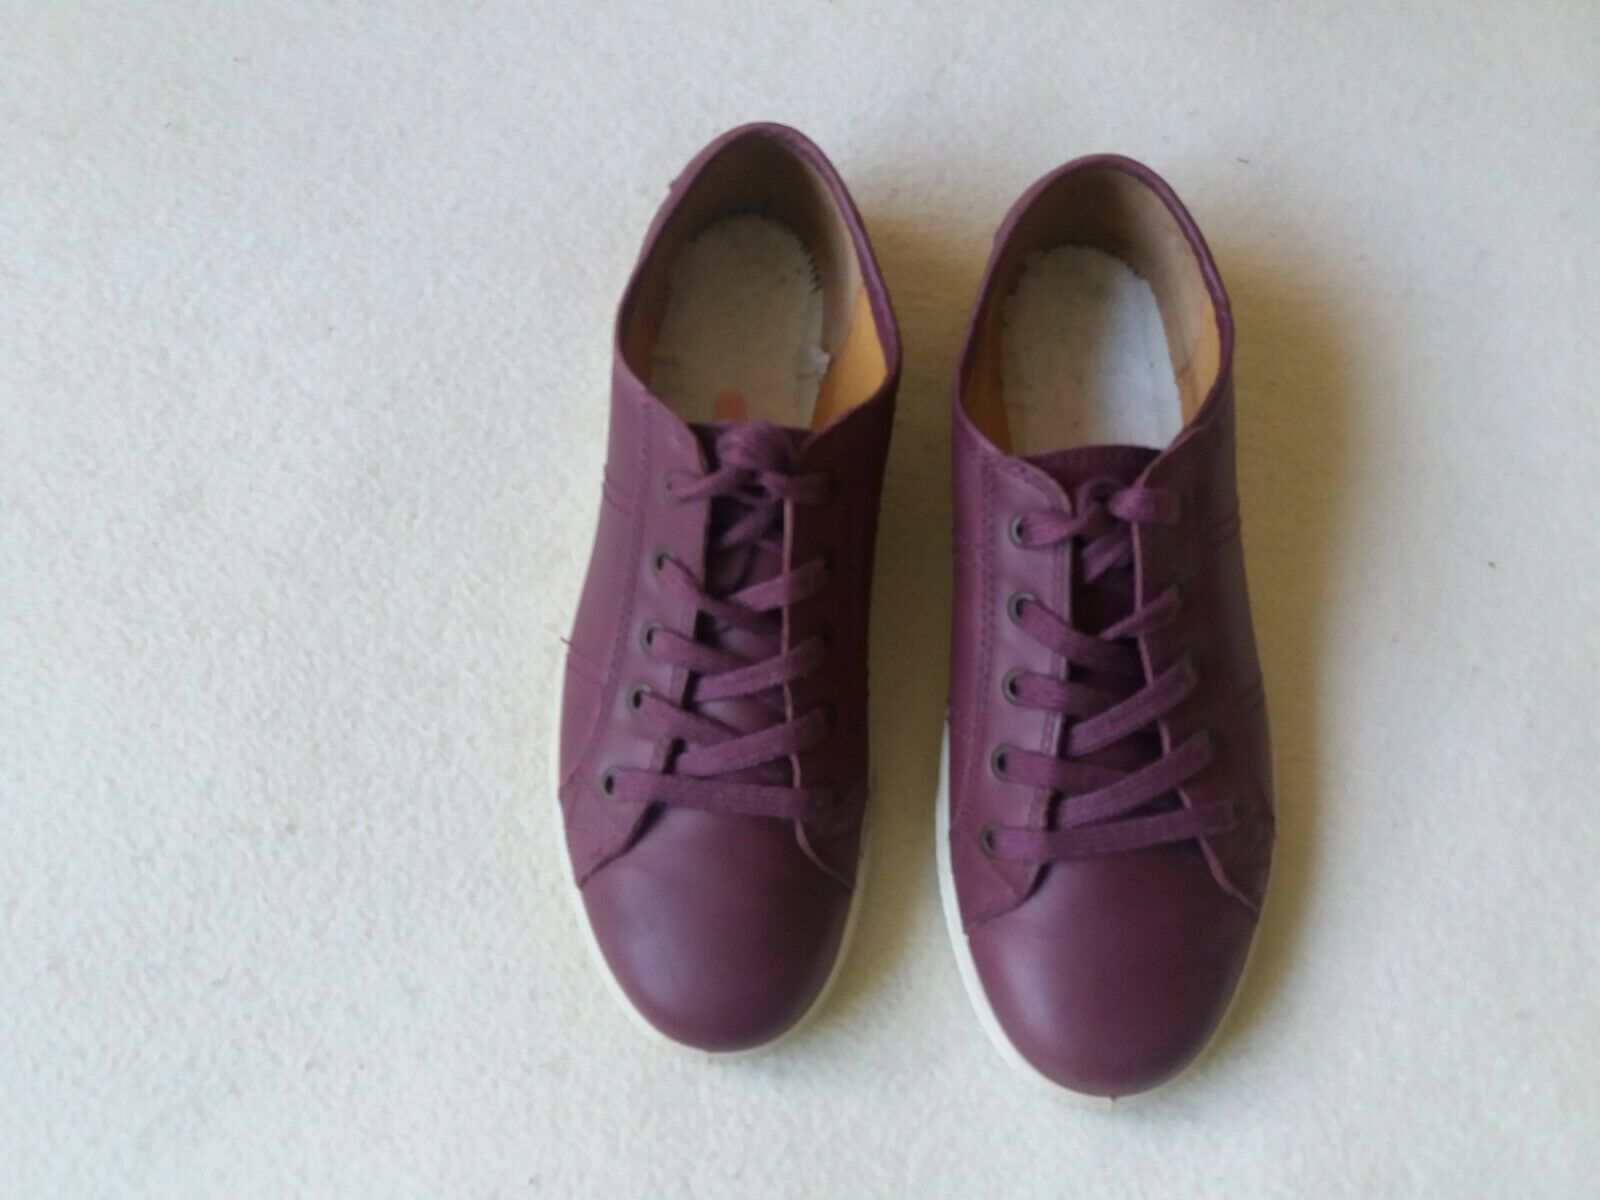 Women's Hotter shoes UK Size 5.5 Good Condition